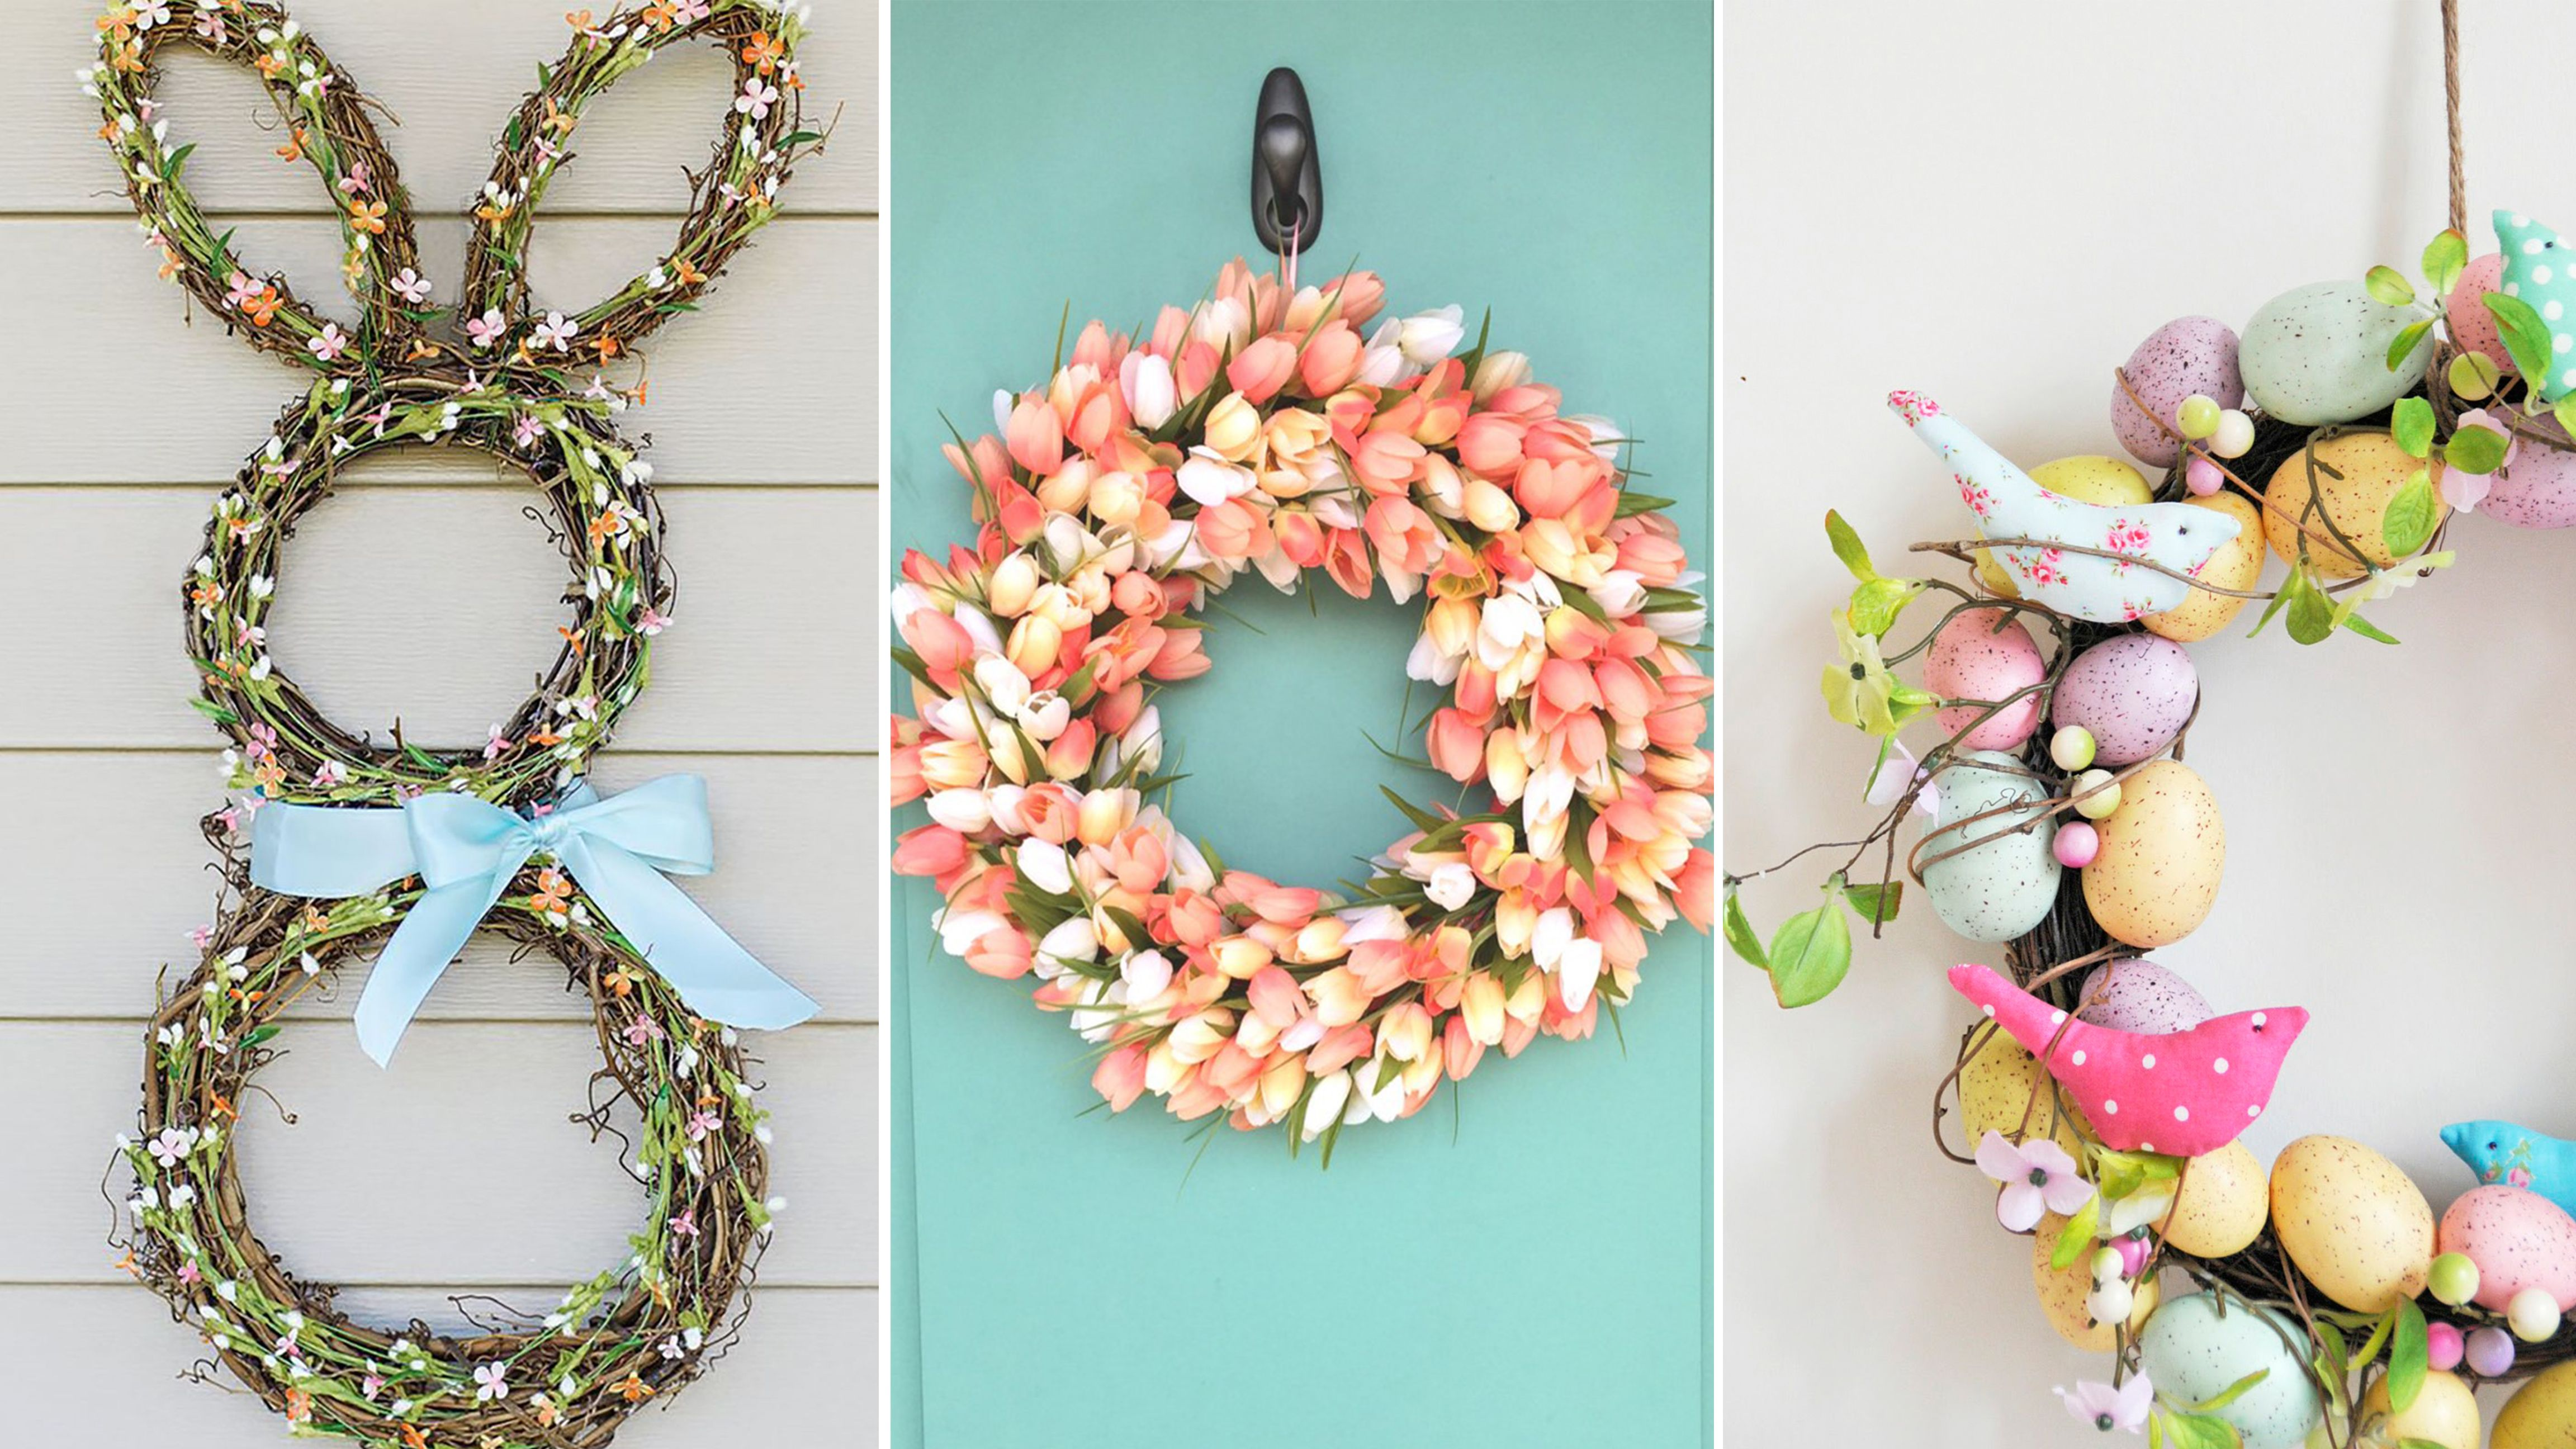 Easy do it yourself crafts easter craft ideas including diy indoor diy easter wreaths with easy do it yourself crafts solutioingenieria Choice Image